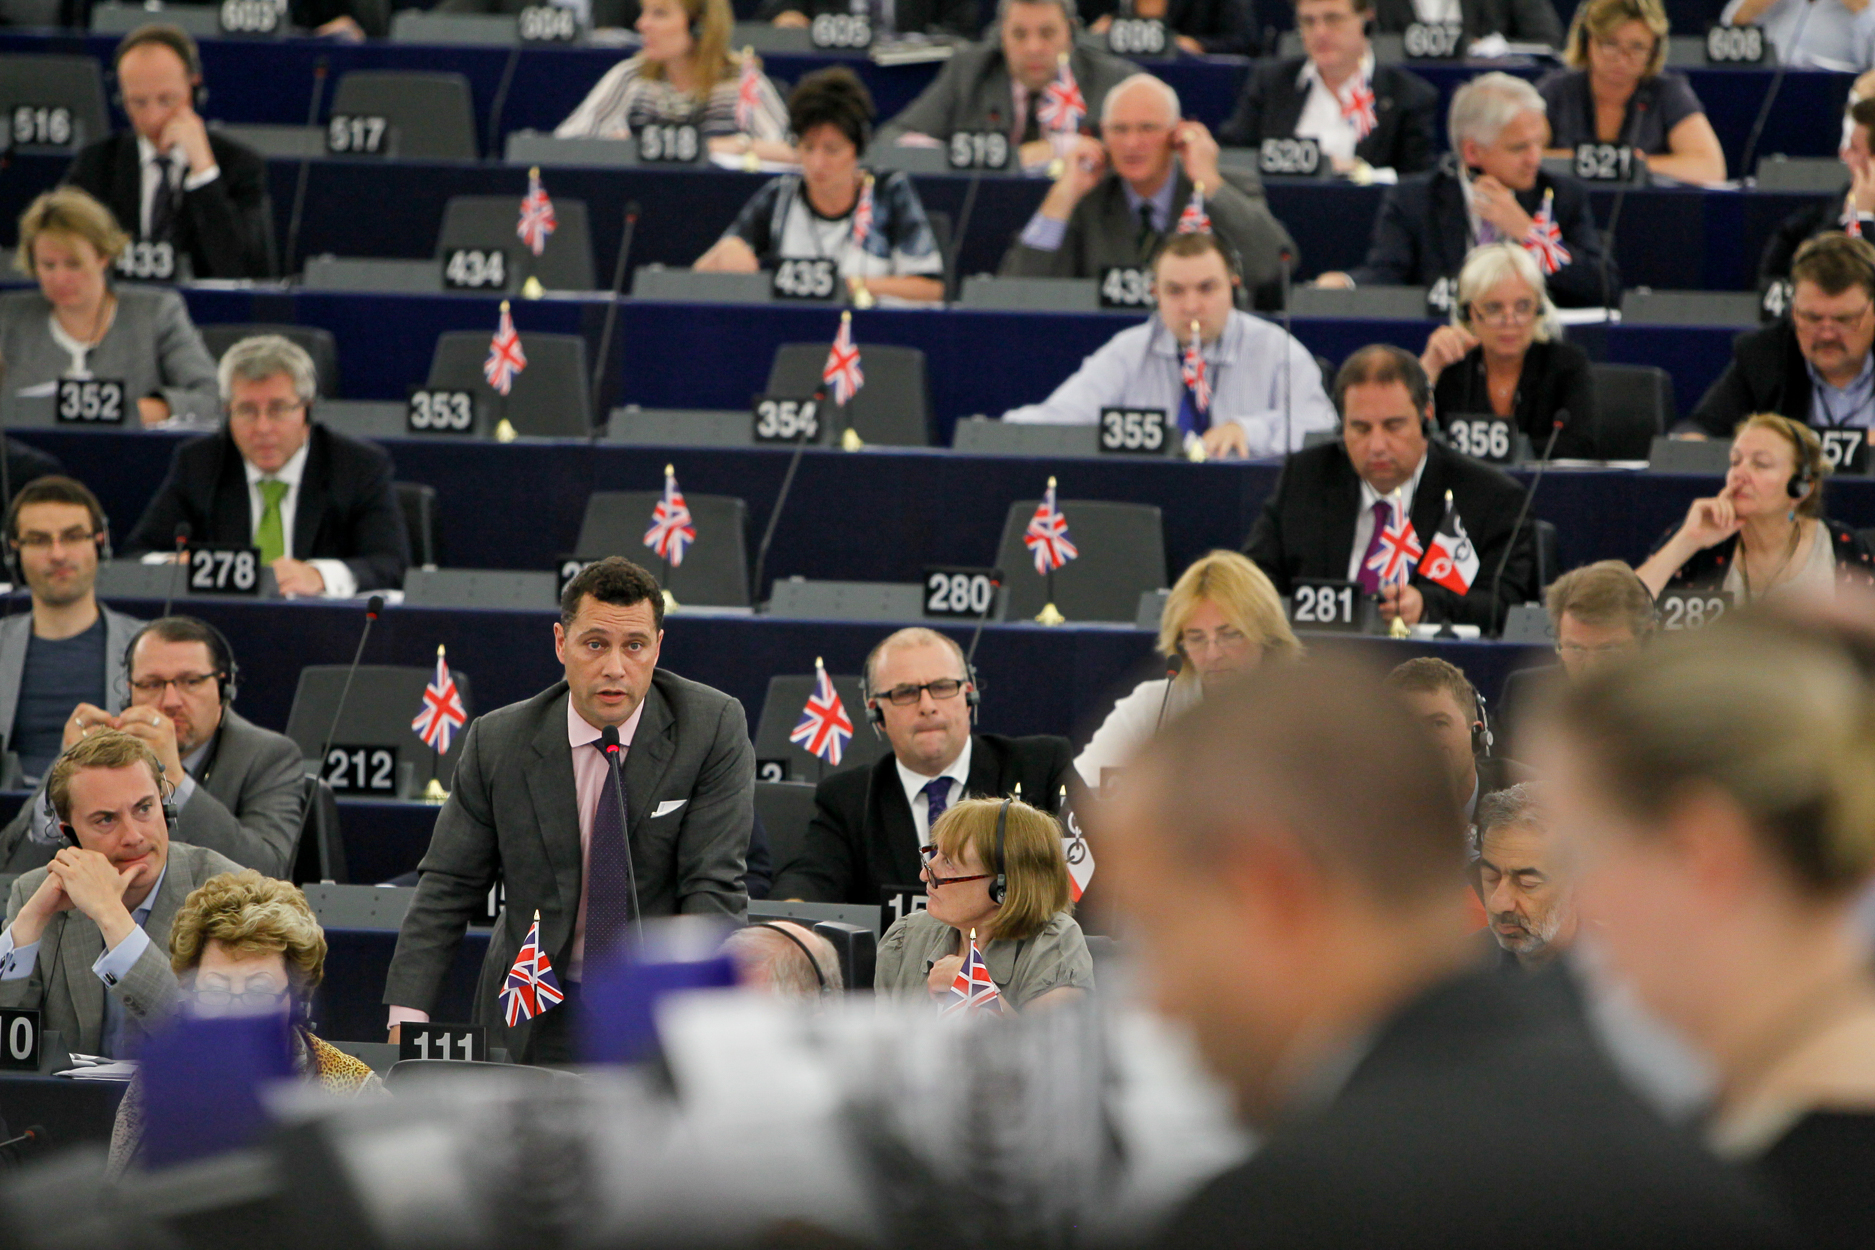 European Parliament targets 'fake' political groups